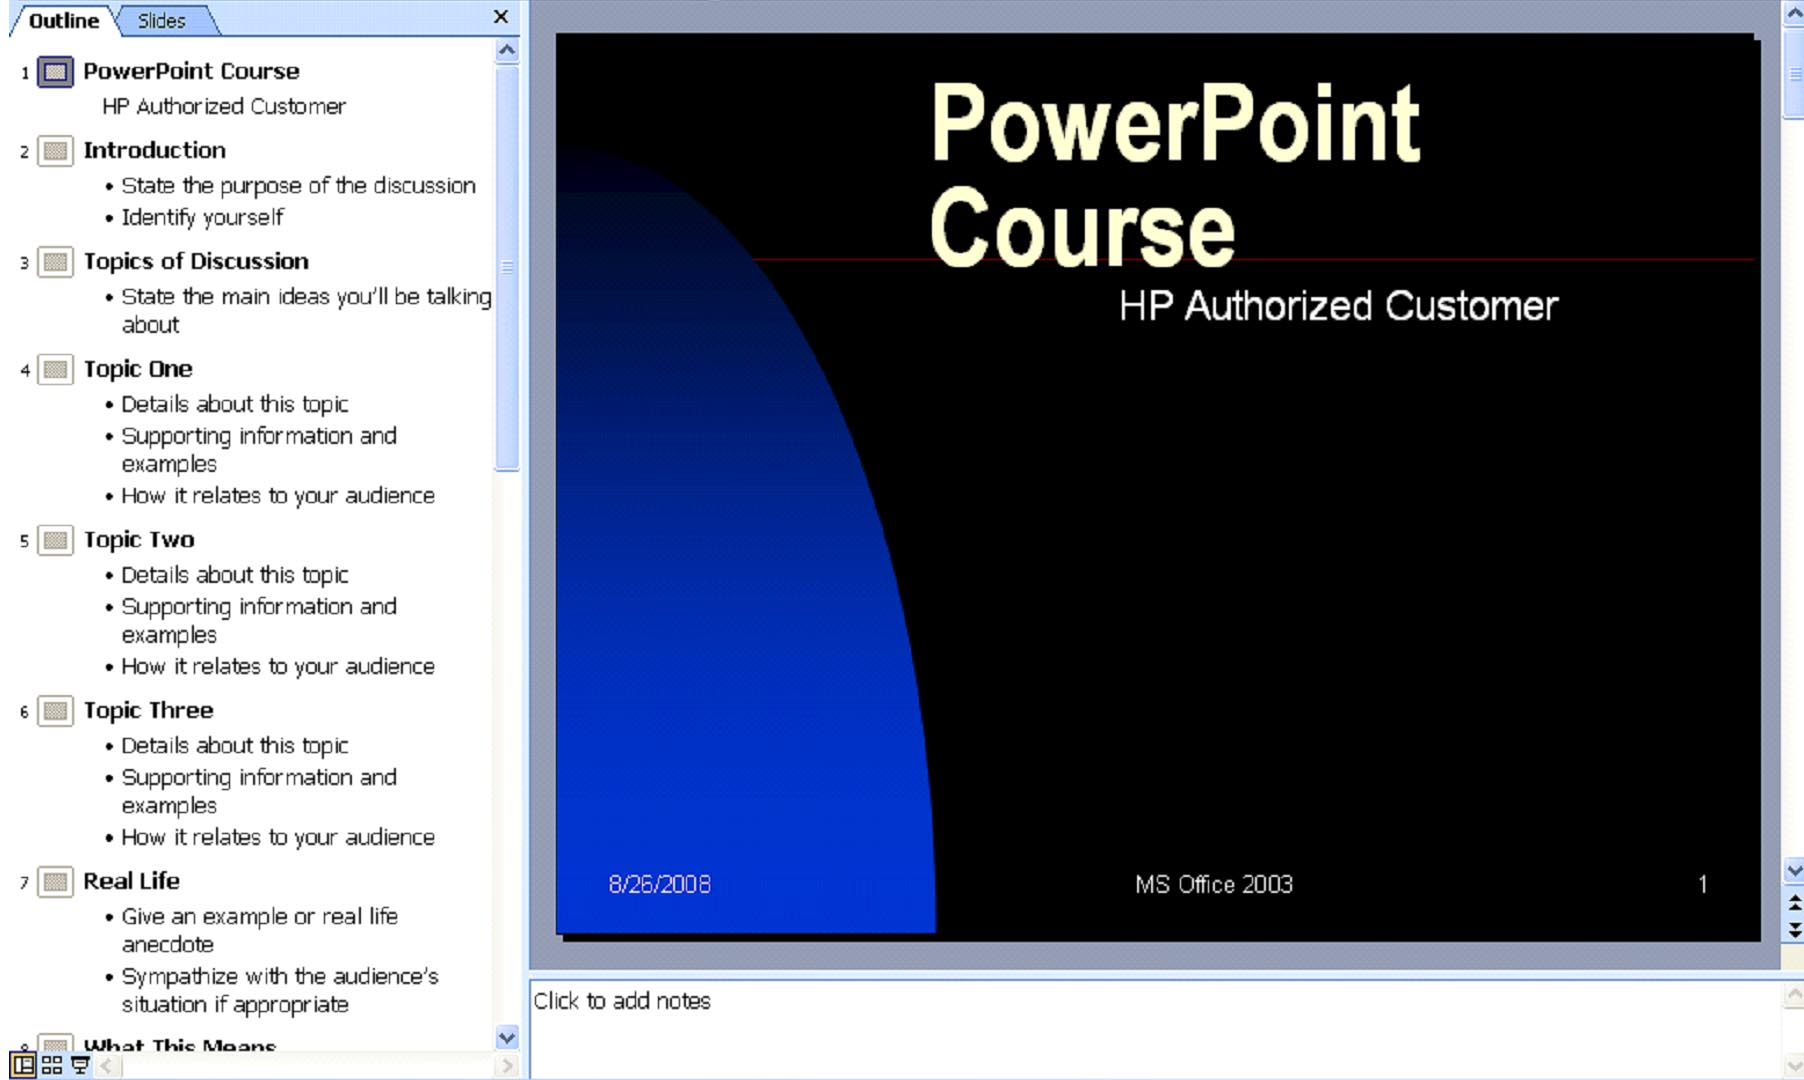 Powerpoint 2003 how to create presentations universalclass the appropriate window where the changes need to be made otherwise click finish and view the document your presentation will open in the slide panel toneelgroepblik Choice Image